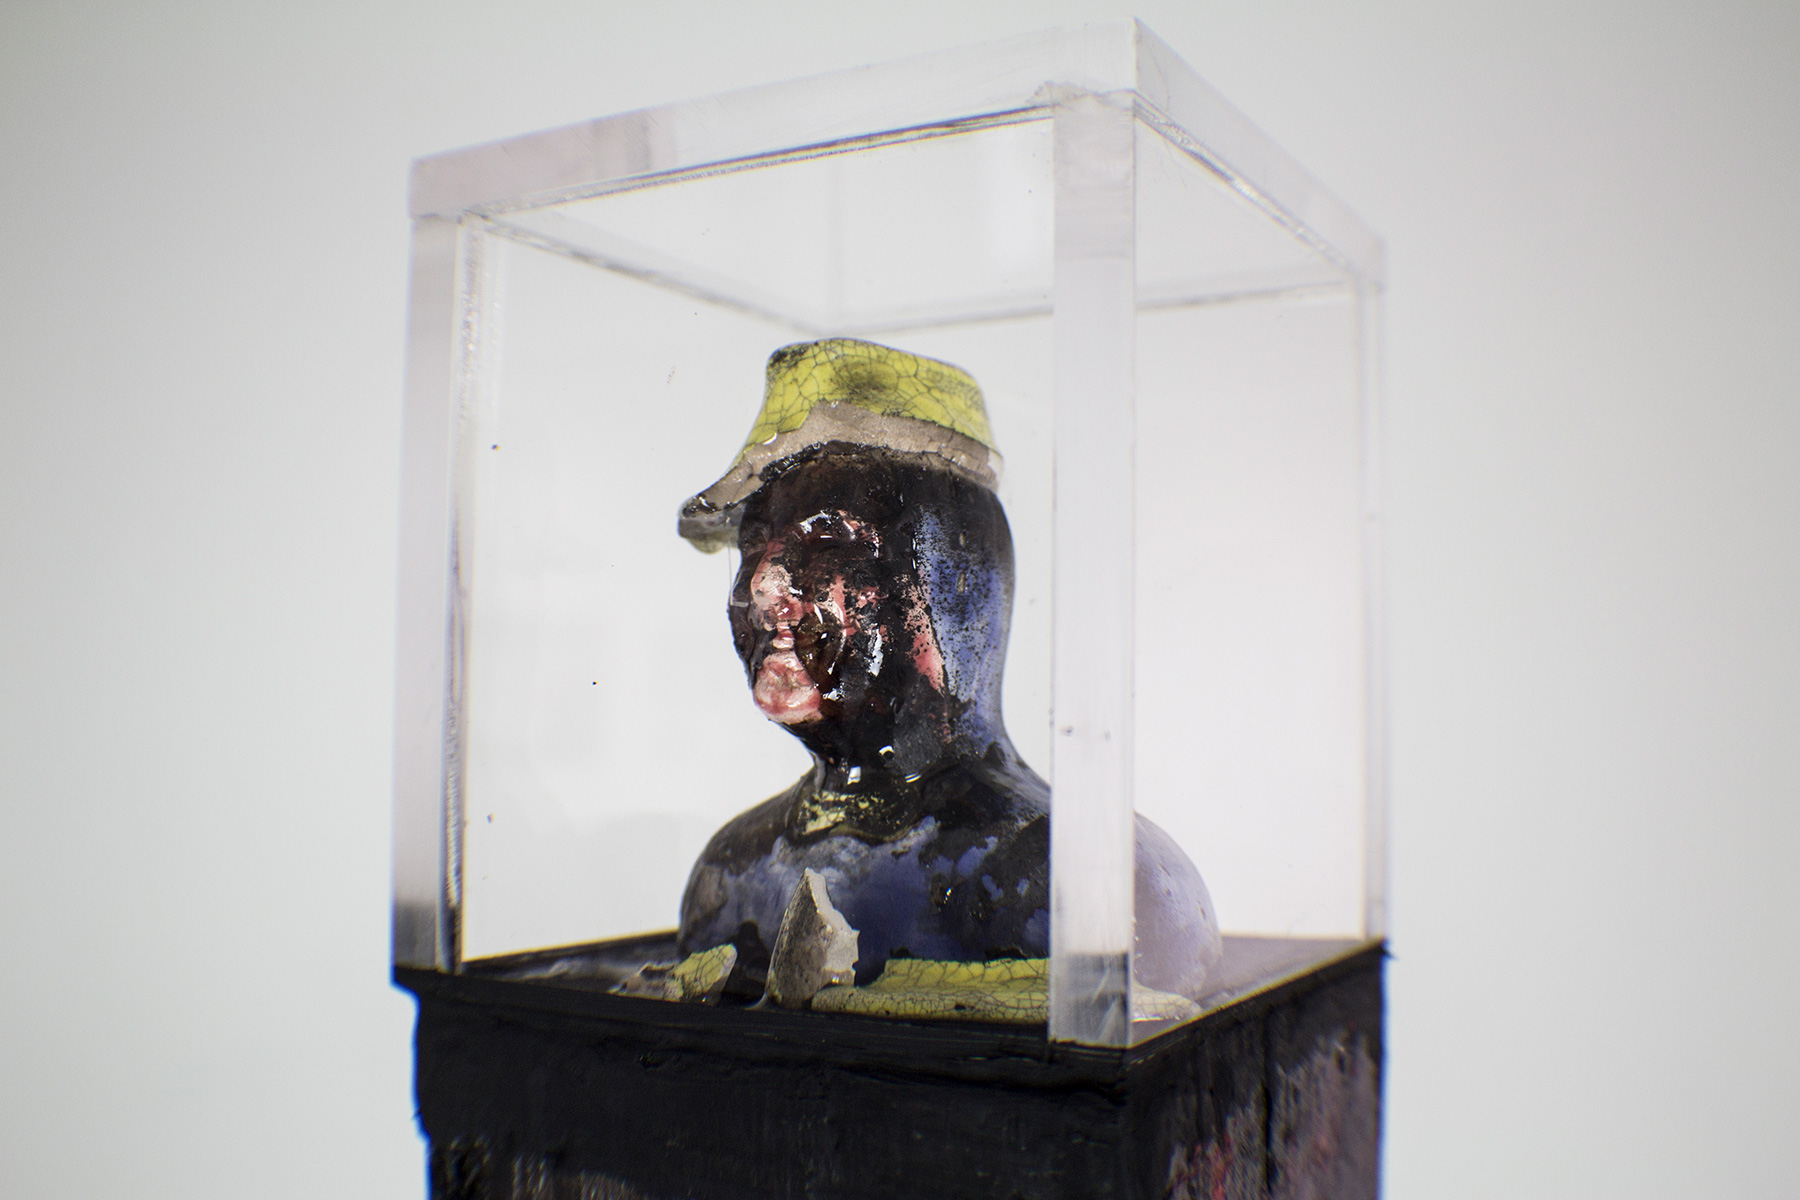 """Homenaje"" Charles Romuald Gardes 1890-1935 - Metal base, burned wood, Carlos Gardel mini broken sculpture acrylic box - 3-1/2""x3-1/2""x58"" - © Flavio Bisciotti"